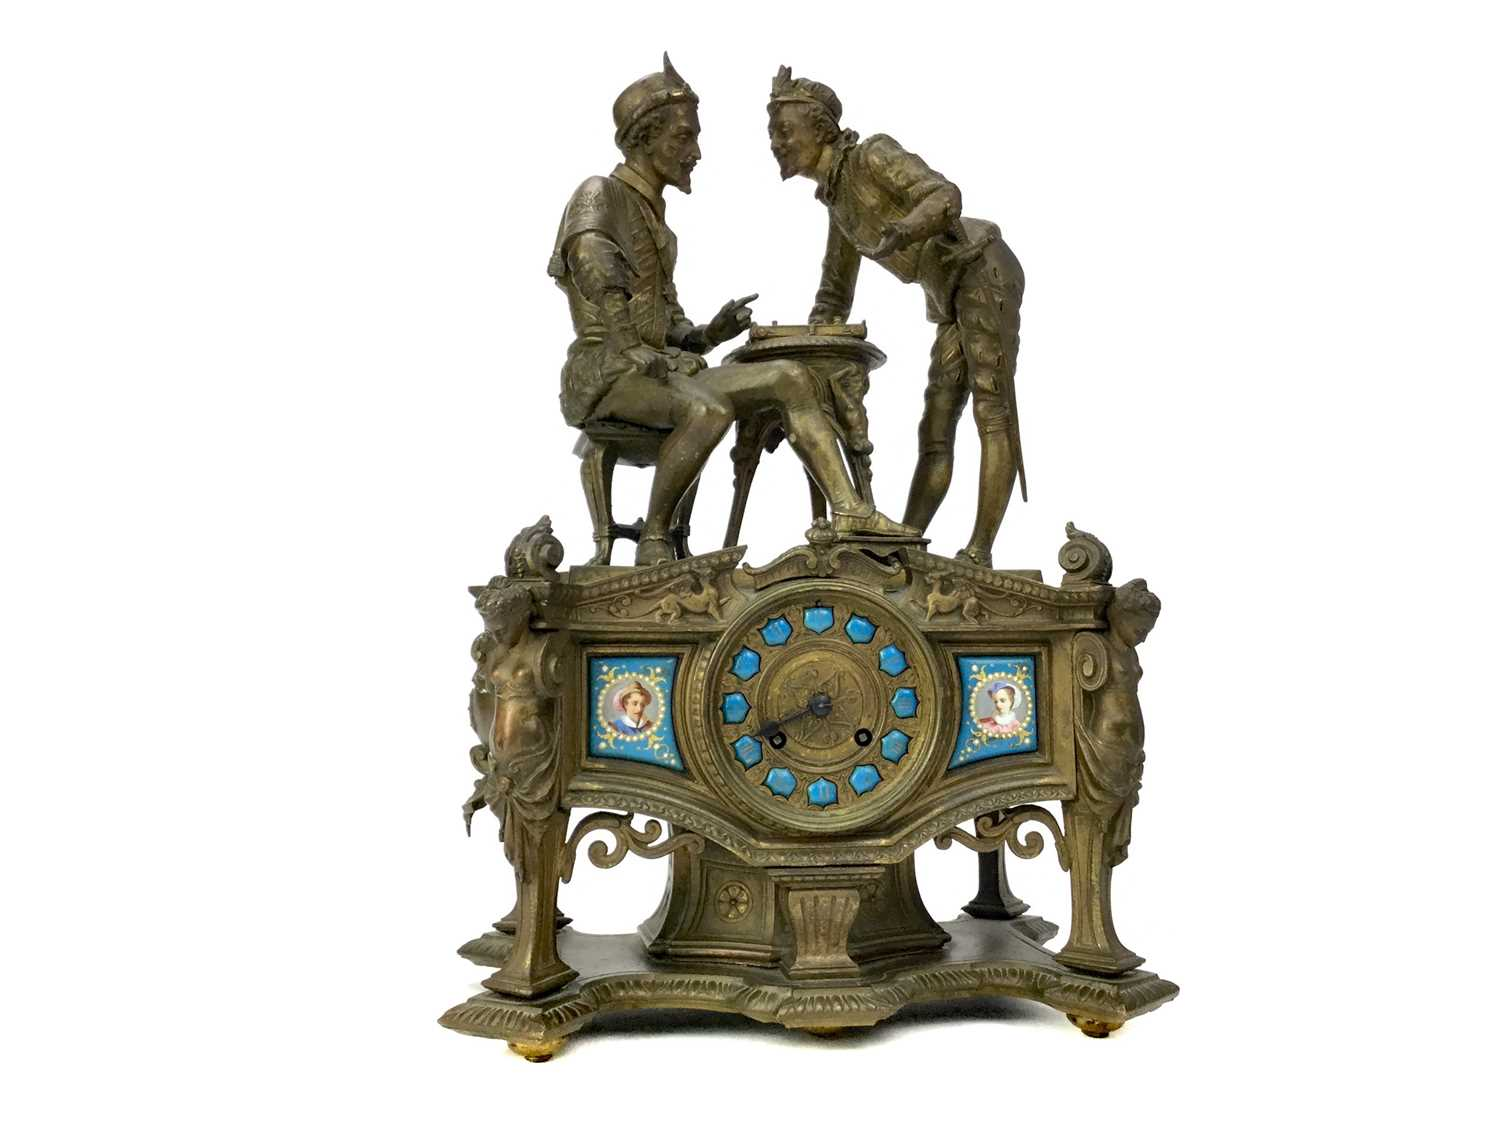 Lot 1727 - A LATE 19TH CENTURY FRENCH FIGURAL MANTEL CLOCK